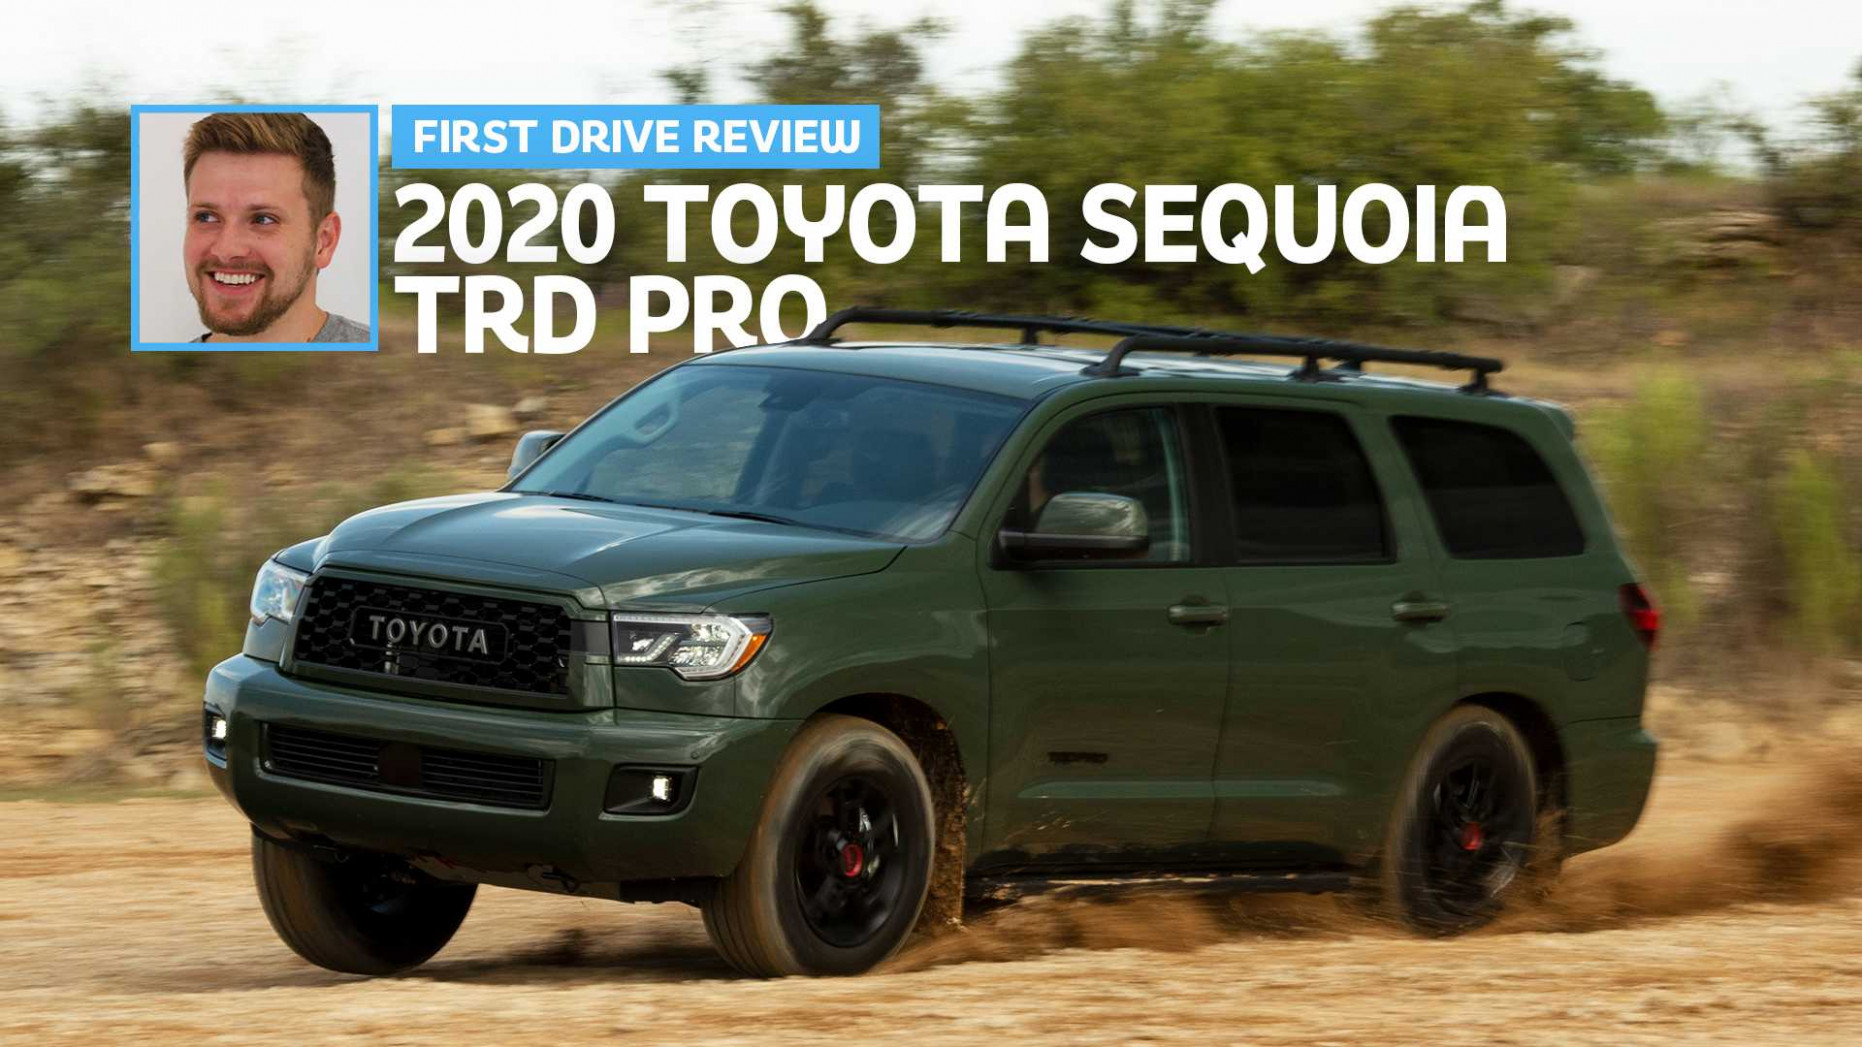 7 Toyota Sequoia TRD Pro First Drive: Adventure, Party Of Seven